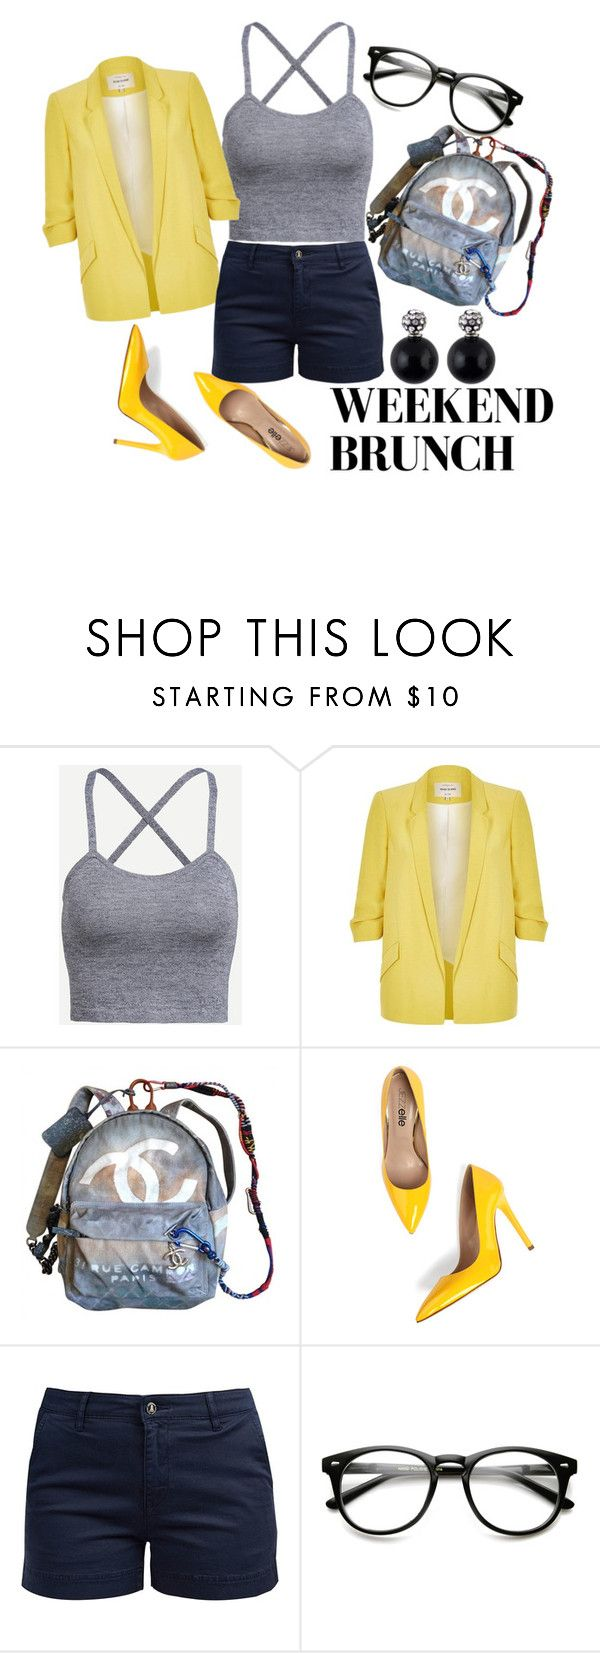 """CRAZY 8"" by vladona ❤ liked on Polyvore featuring River Island, Chanel and Barbour"